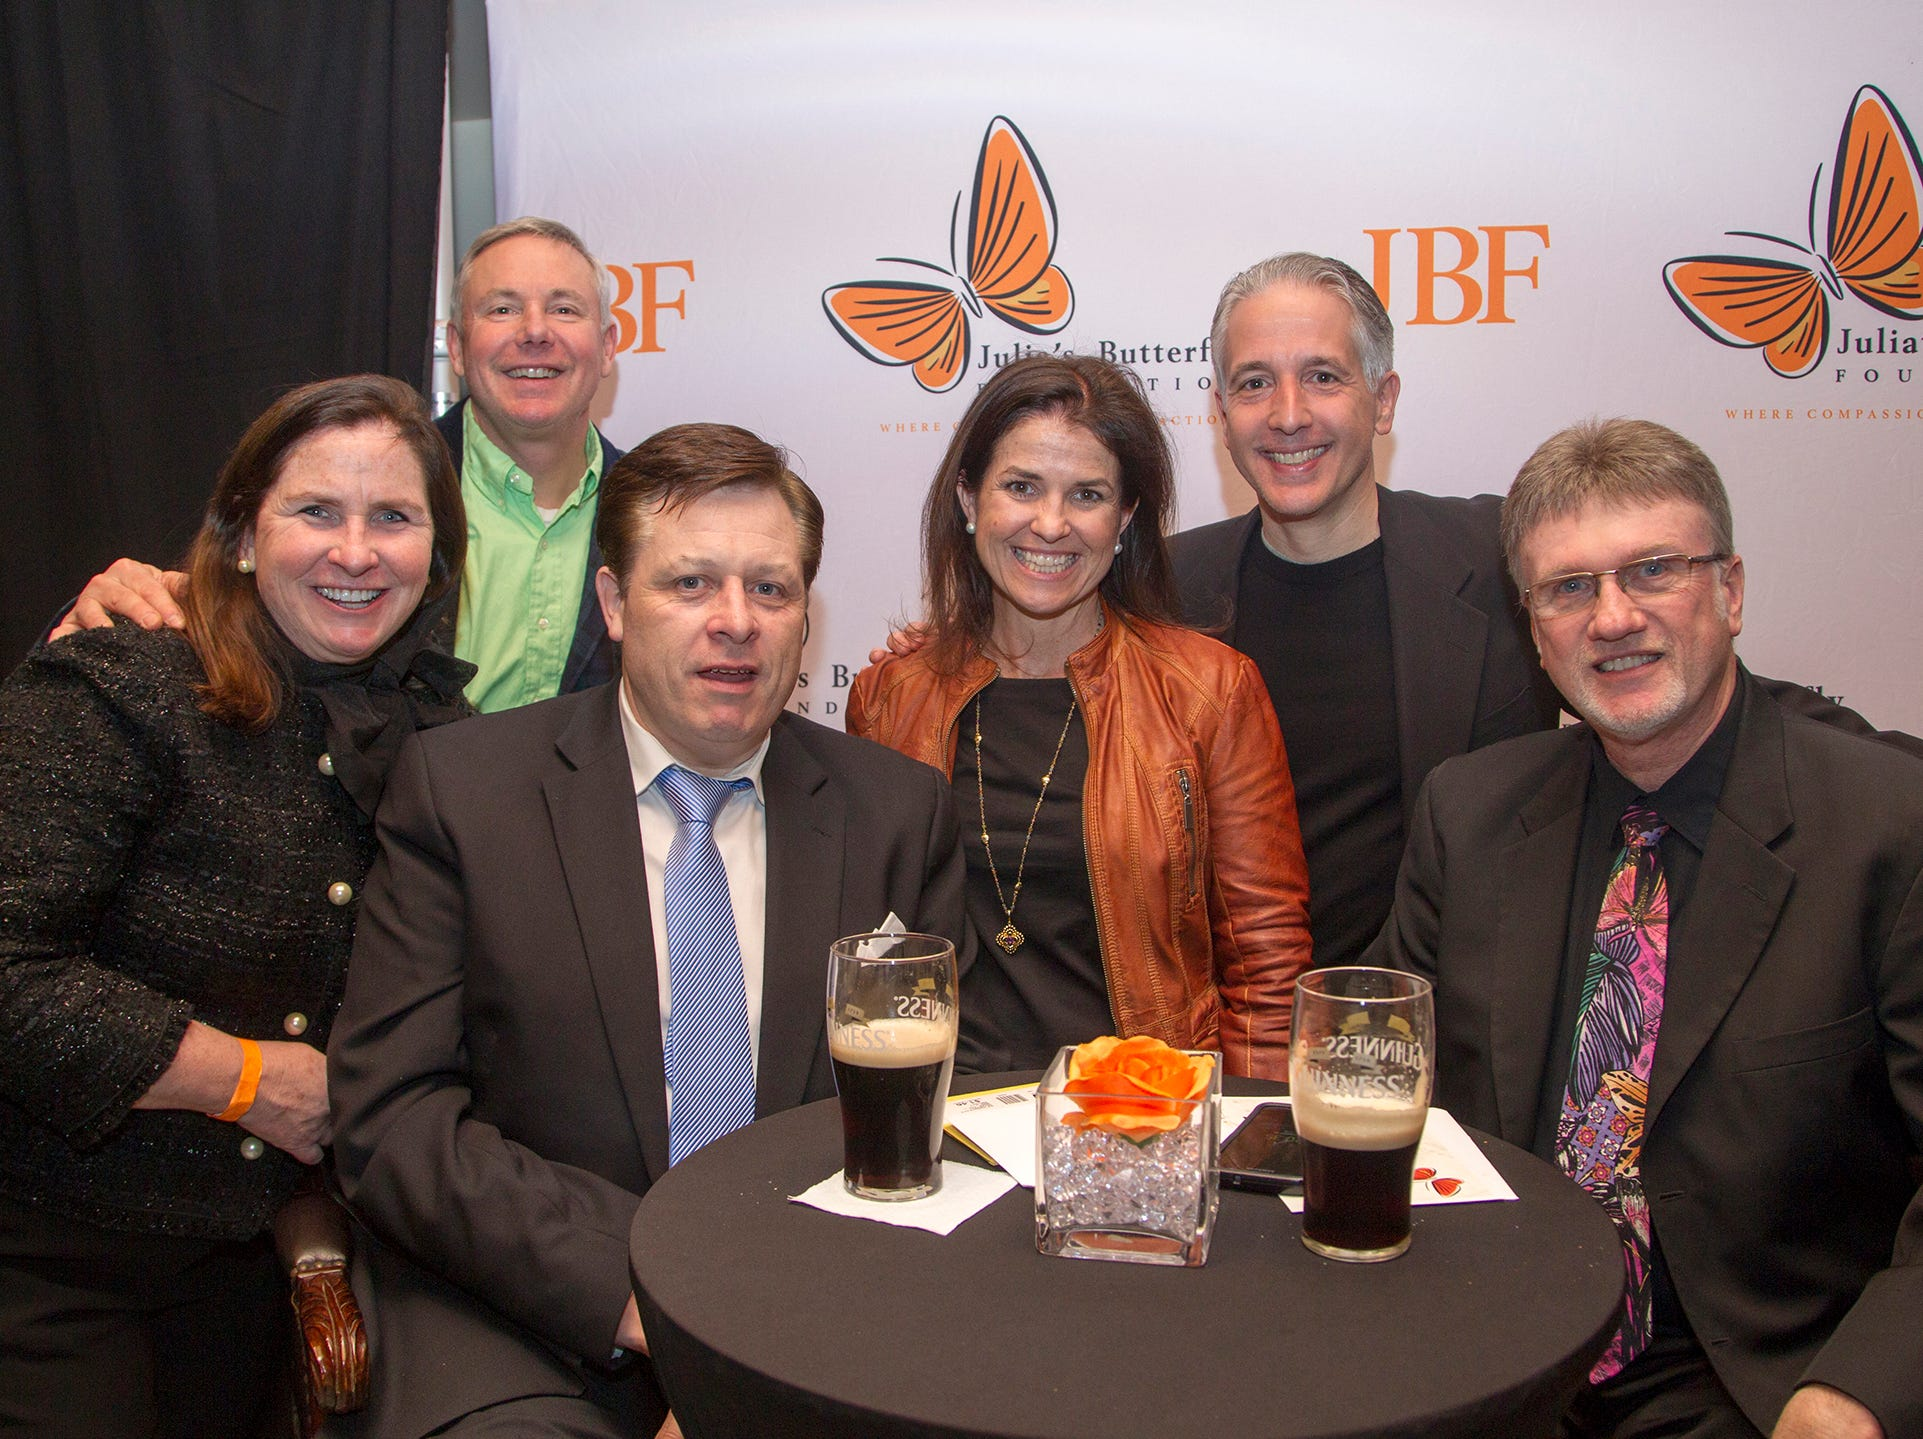 Maureen and Dave McLoughlin, Patti Reynolds DePhillips, Assemblyman Christopher DePhillips, David George. Anthony Kearns benefit concert to benefit Julia's Butterfly Foundation at West Side Presbyterian Church in Ridgewood. 3/23/2019